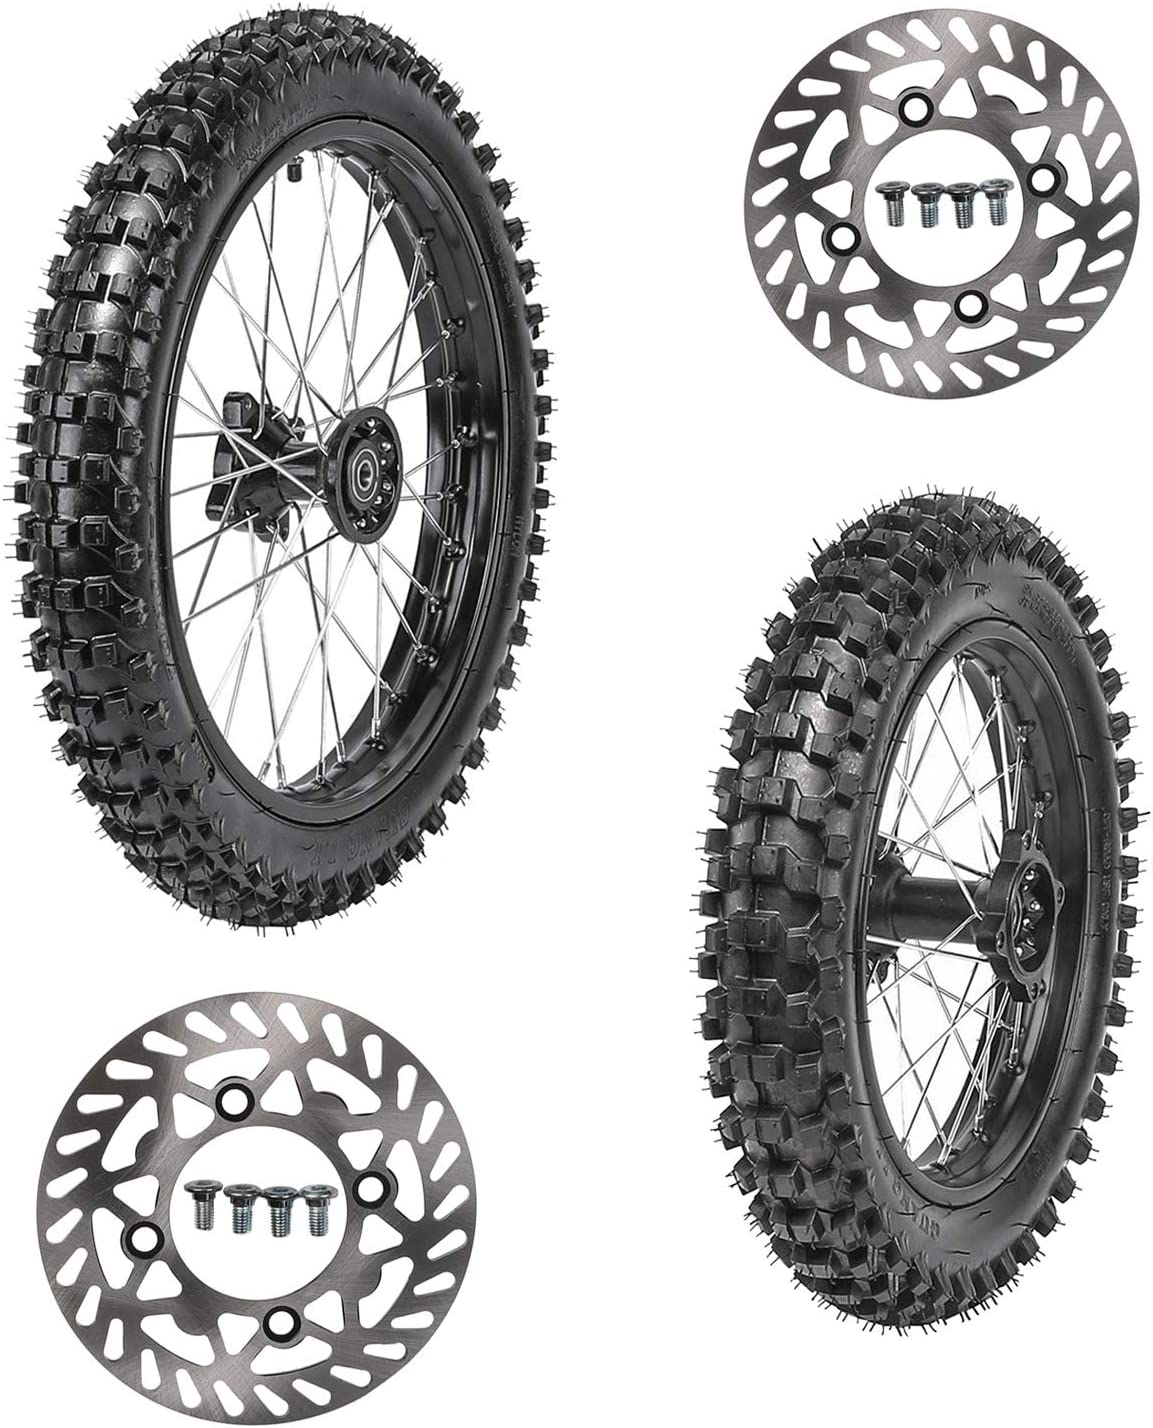 1.6x17 Wheel Tire and Rim Inner Tube with 15mm Bearing Assembly For Dirt Pit Bike 2.75x17 TDPRO 70//100-17